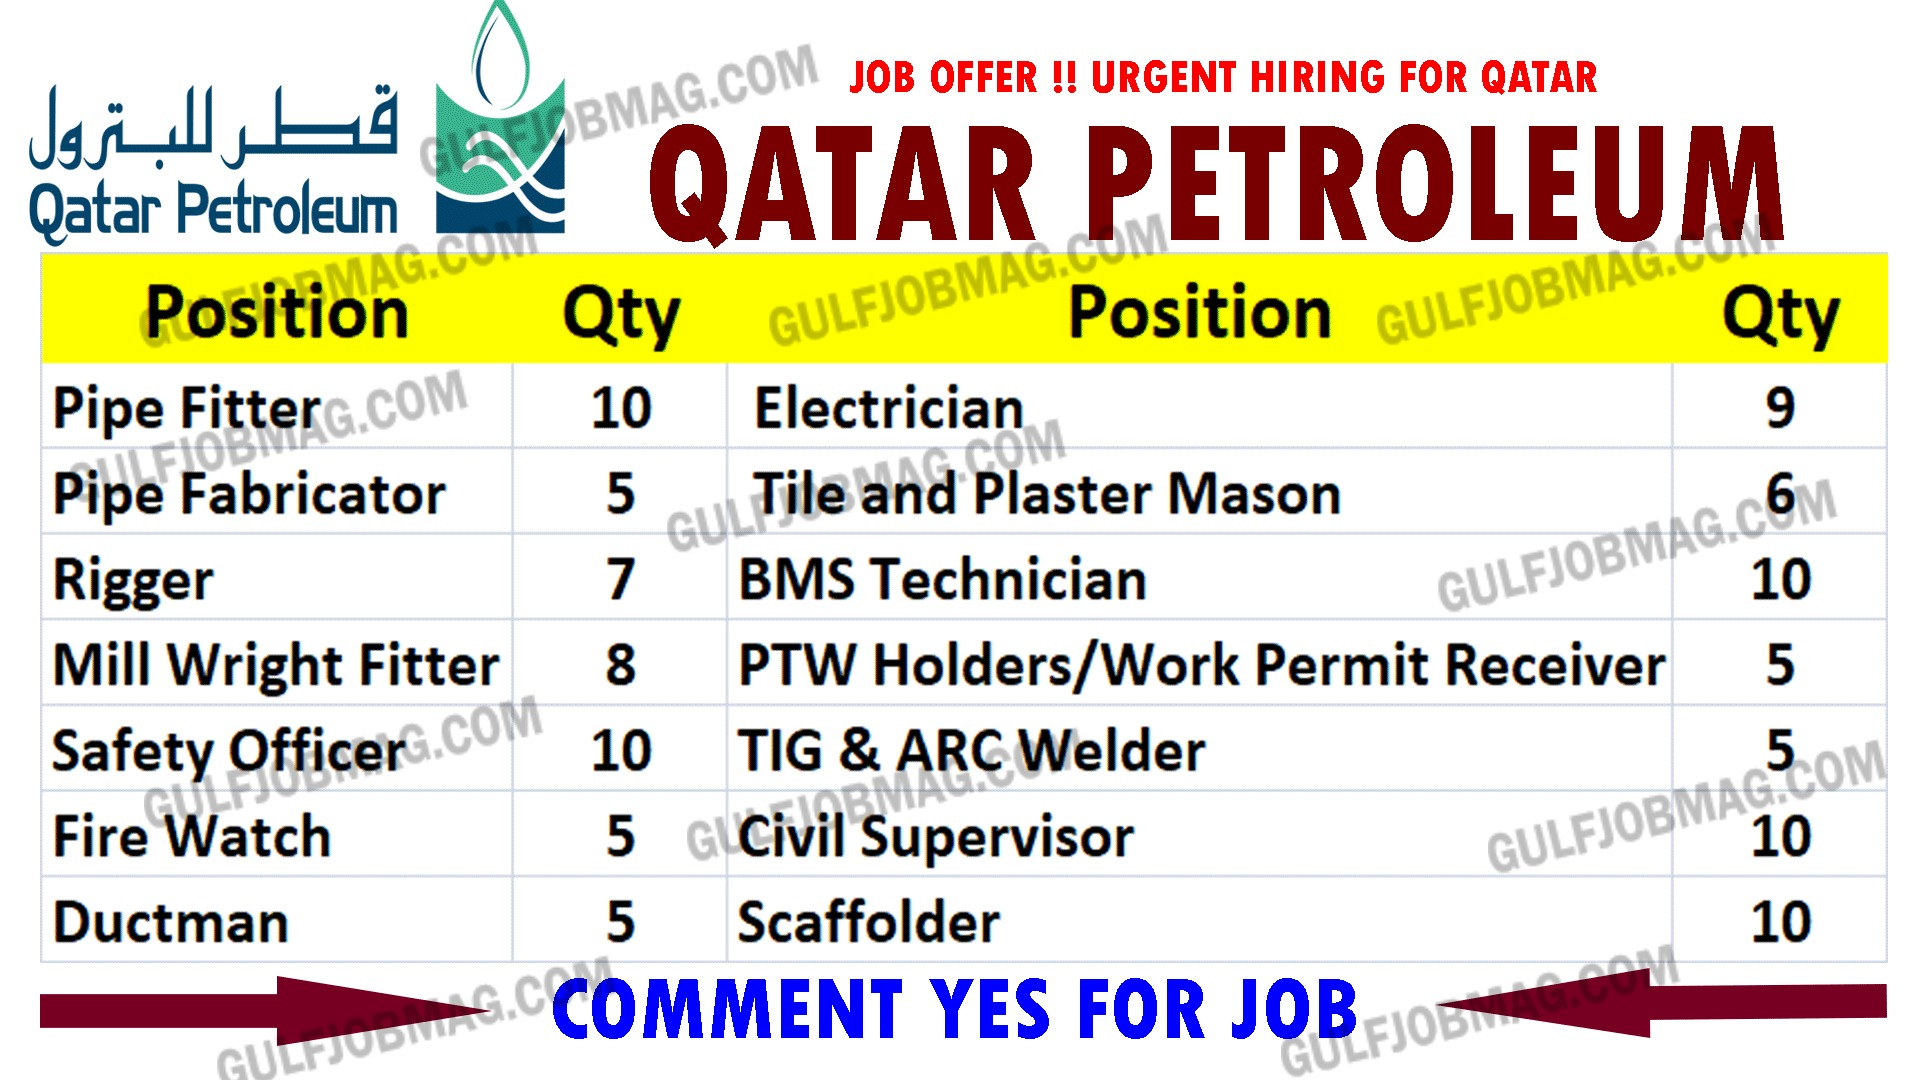 Oil & Gas Company Job in Qatar - Gulf Job Mag